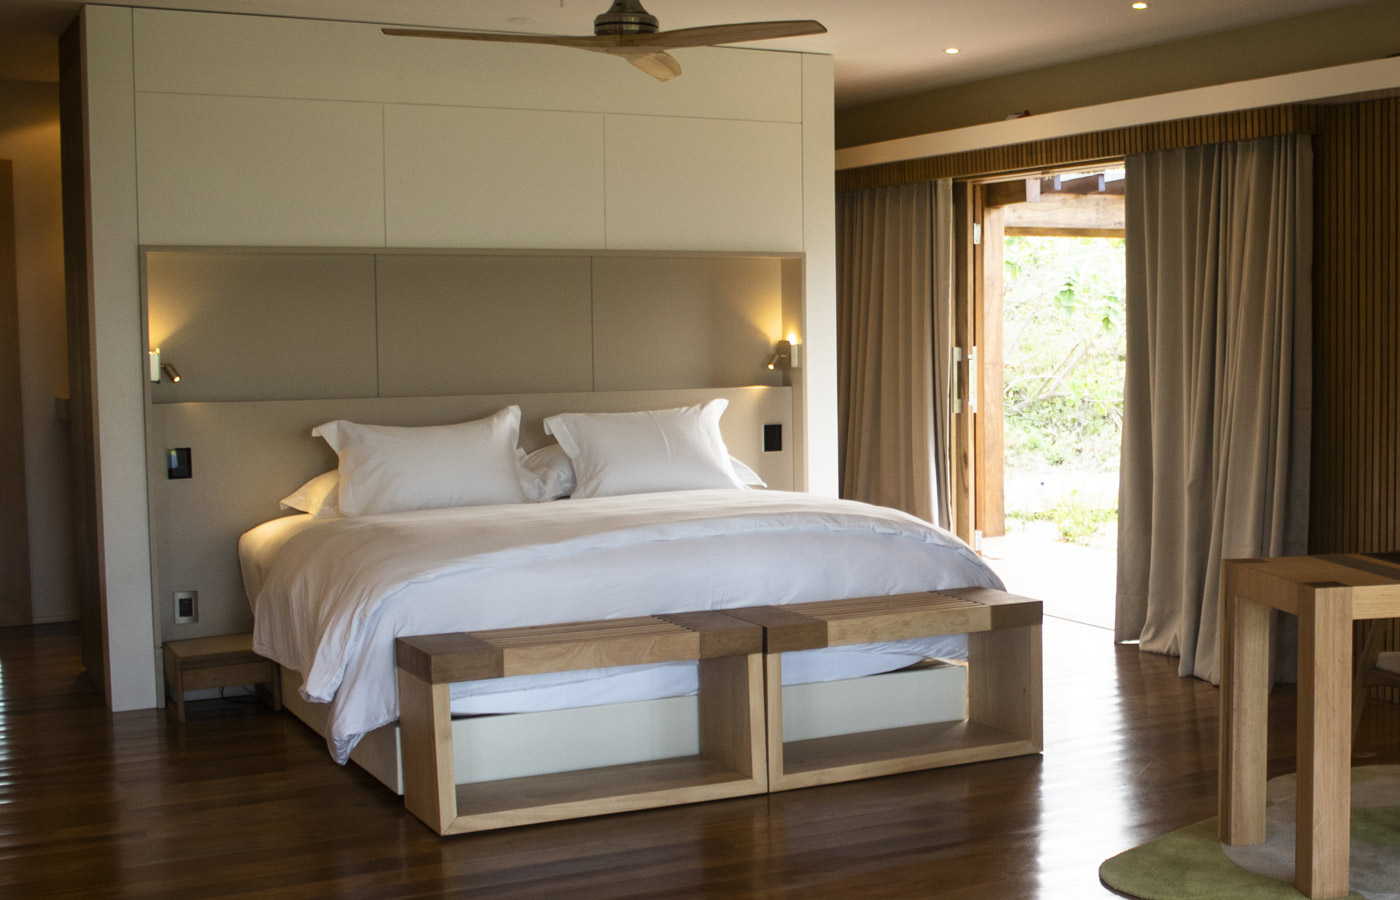 Rooms at Hotel Casana are luxurious and modern